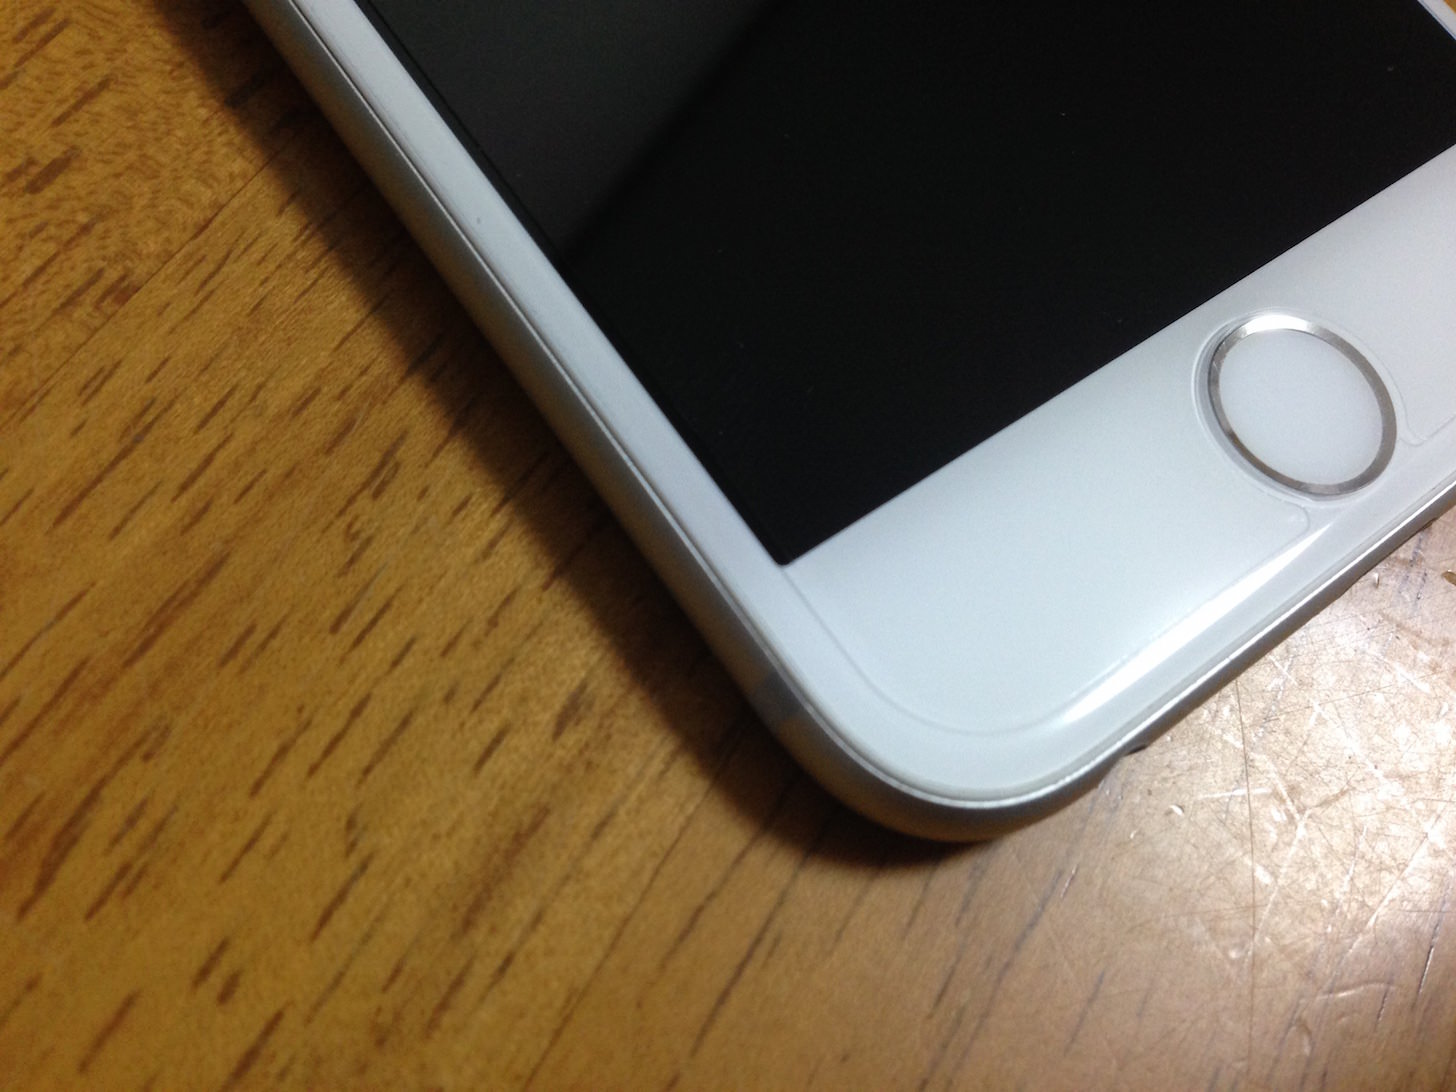 iPhone6 保護フィルム貼った